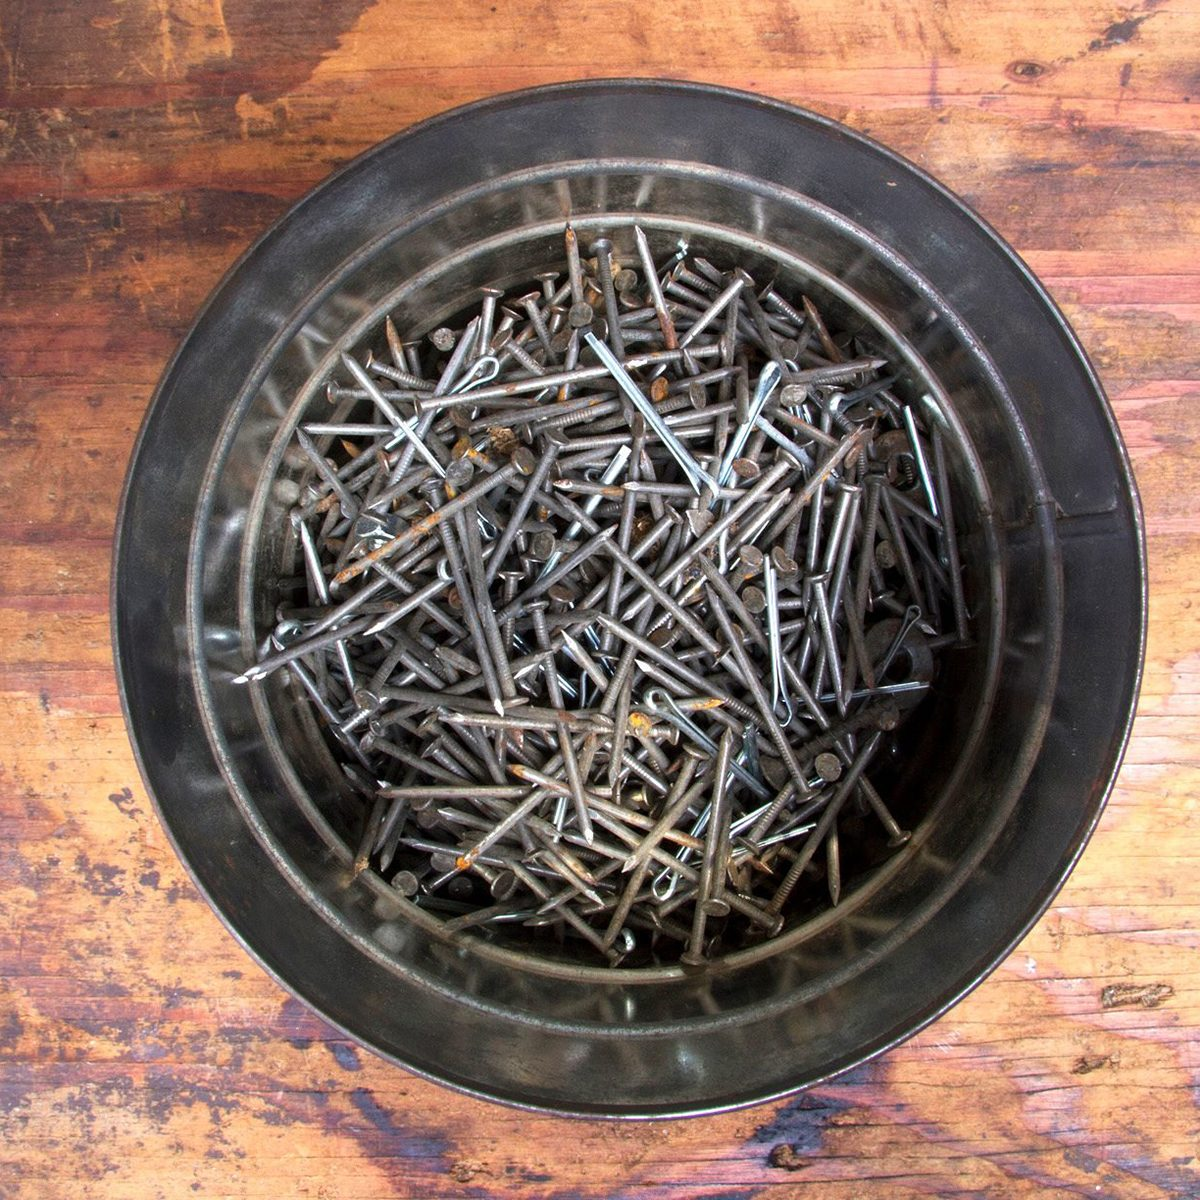 The garage staple of an old metal coffee can being used to hold assorted nails.